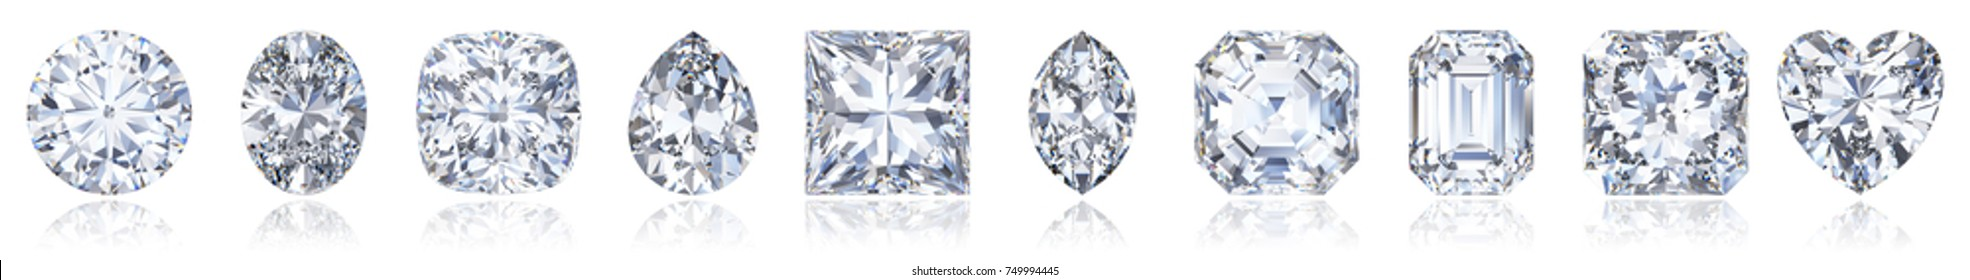 Ten the most popular diamond cuts and shapes in one row with light reflections, isolated on white background. 3D rendering illustration